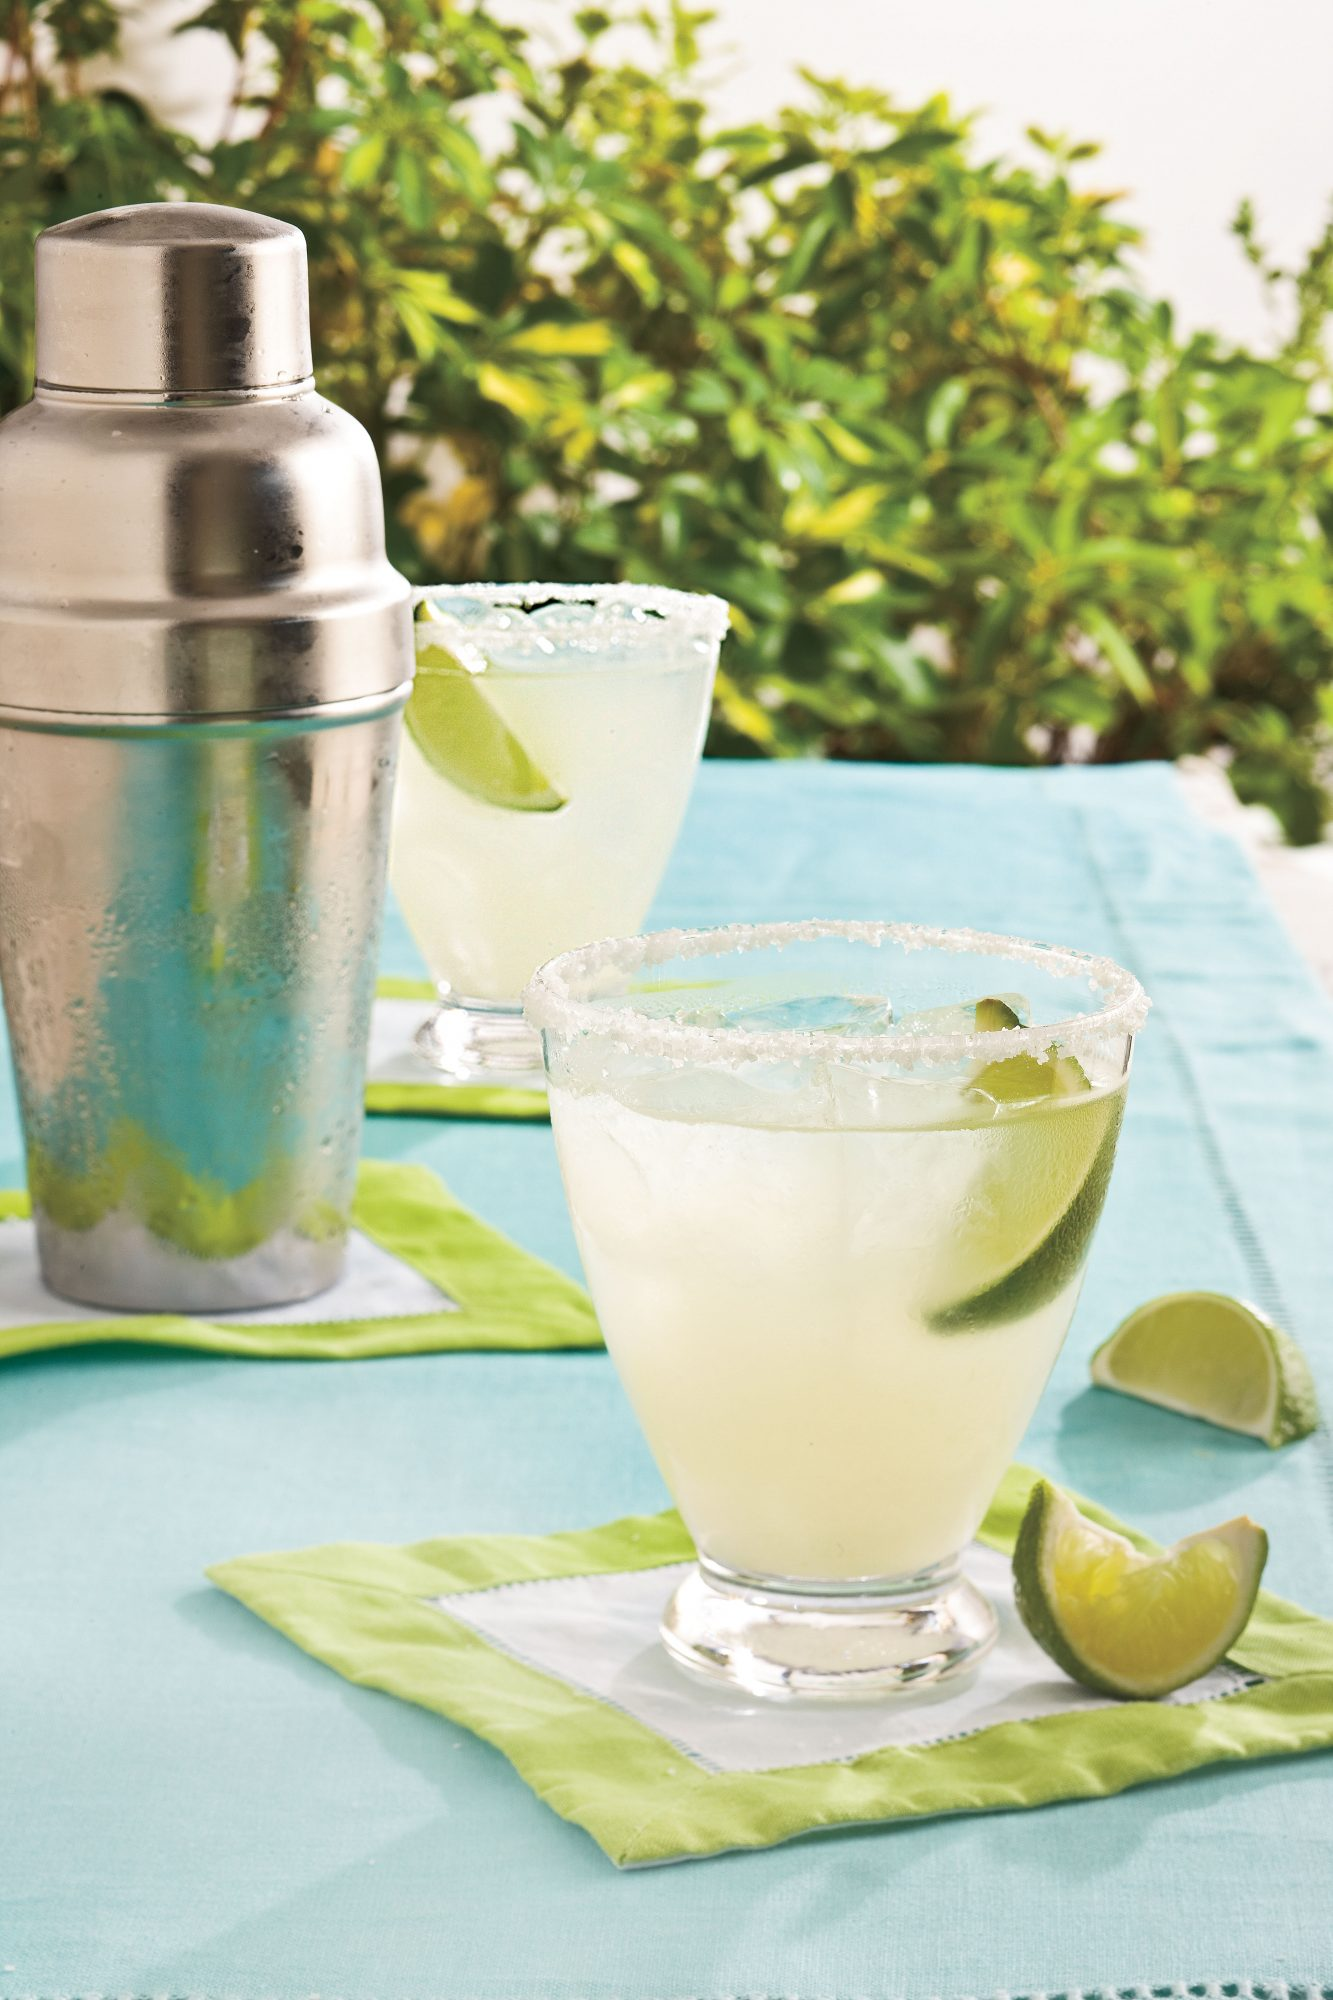 Classic Margaritas on the Rocks